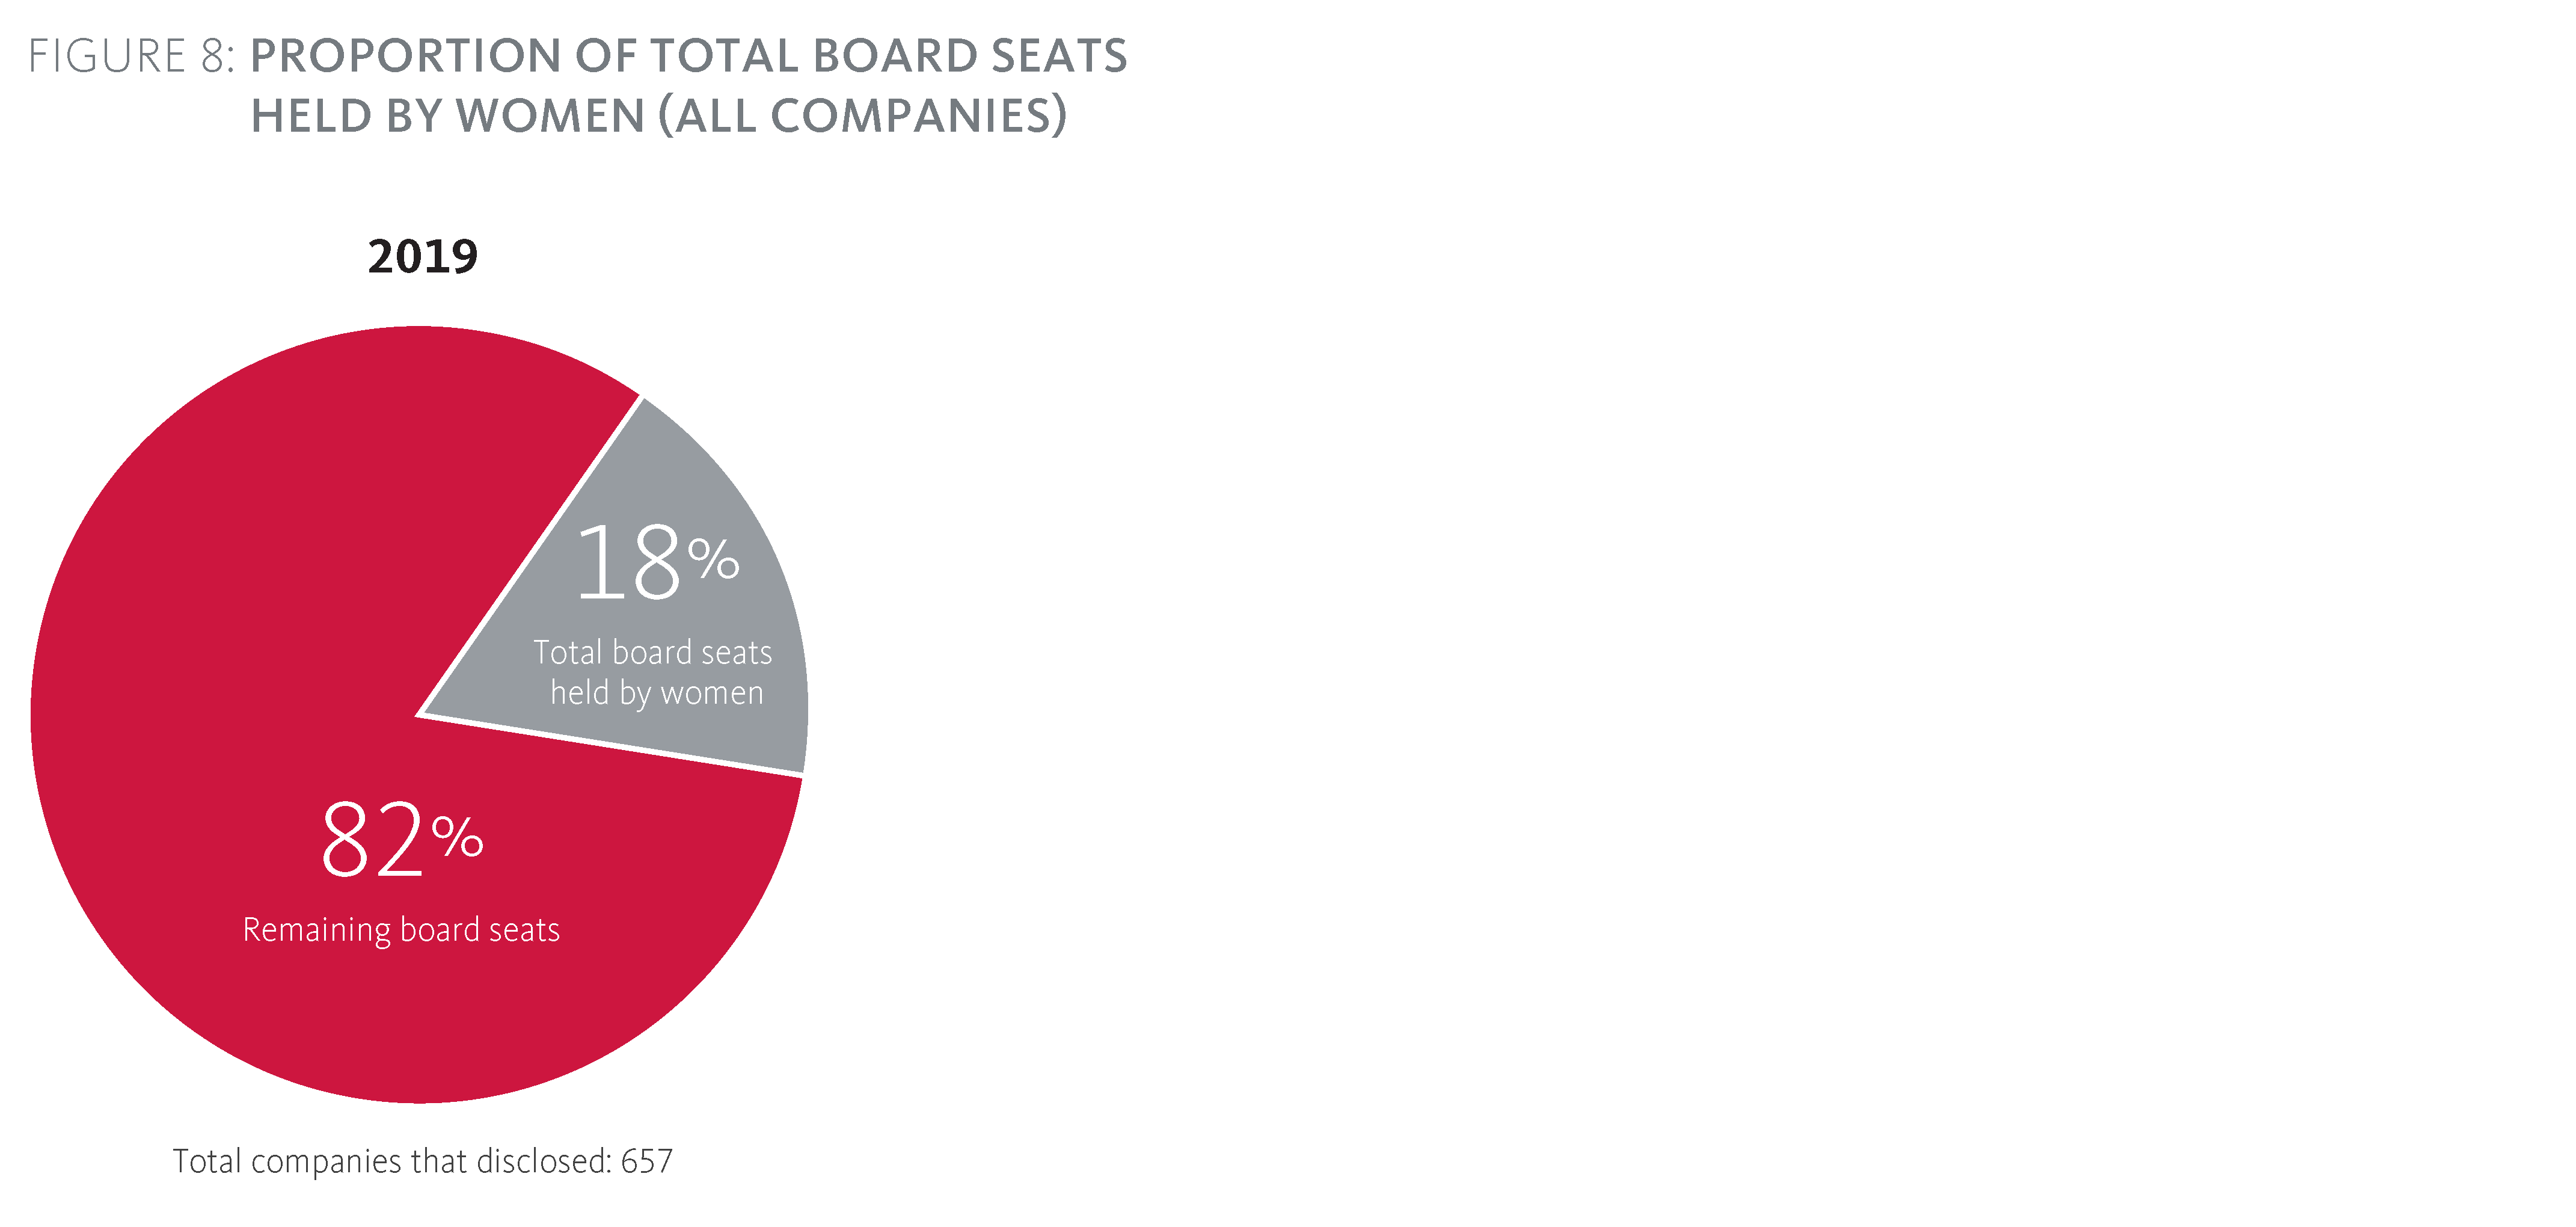 Proportion of total board seats held by women (all companies)